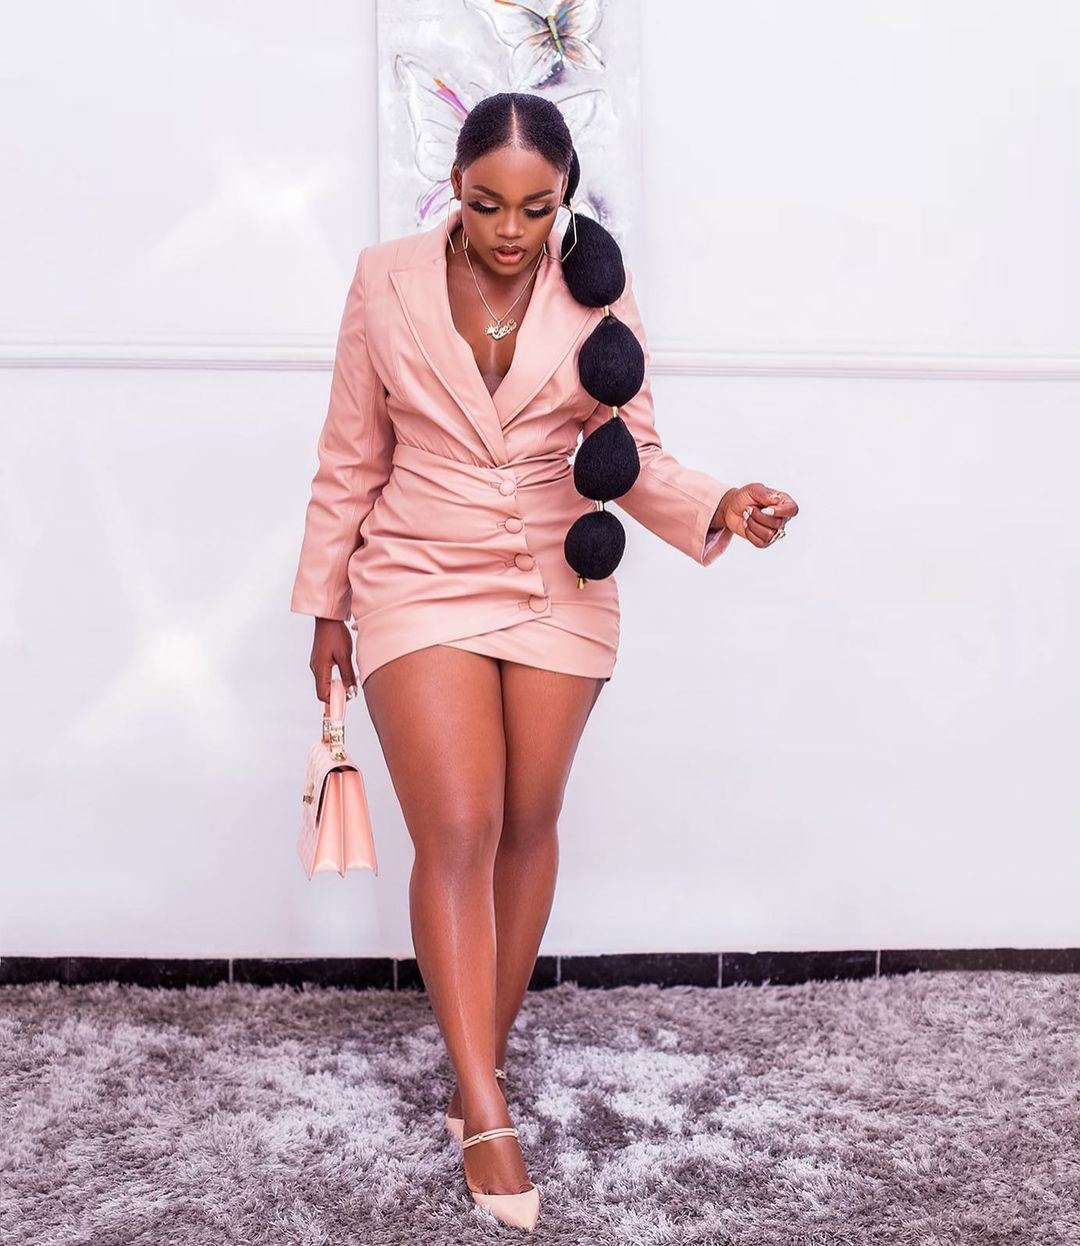 Cynthia Nwadiora Micro Blazer Is Sure To Stand Out